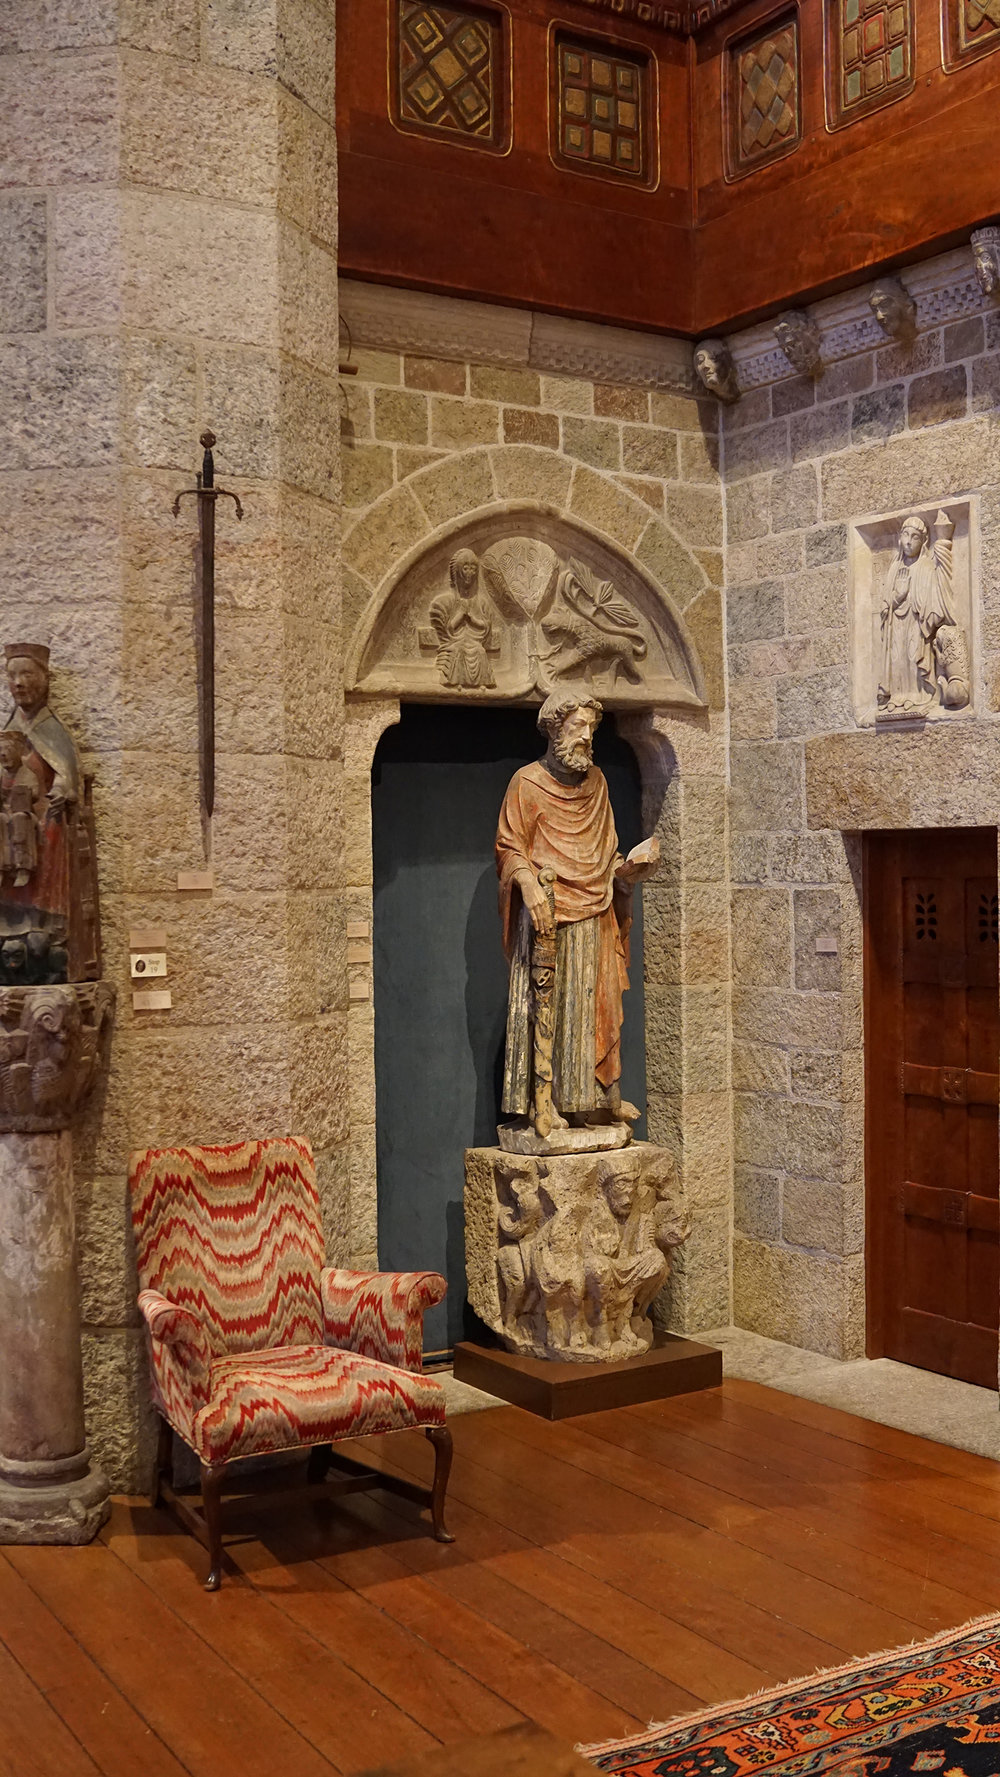 Figure 15: St. Paul conglomeration, Great Hall, Glencairn Museum, Bryn Athyn, Pennsylvania. Photo: Glencairn Museum.